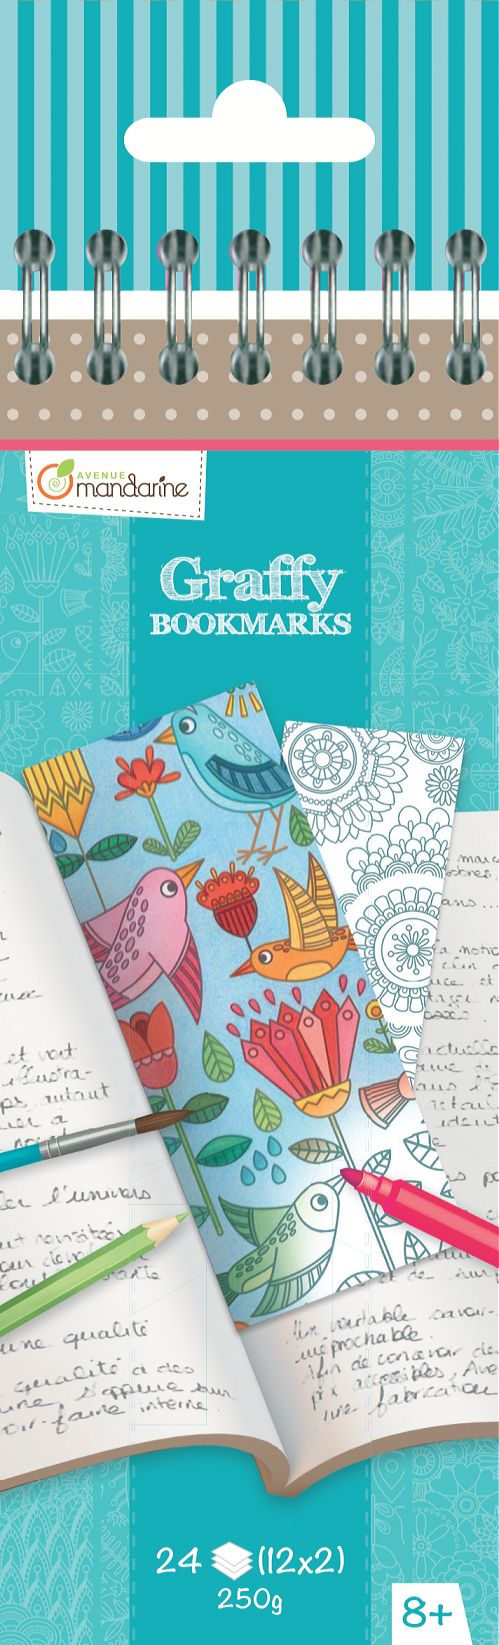 Marcapáginas para Colorear Flores Graffy Bookmark Avenue Mandarine